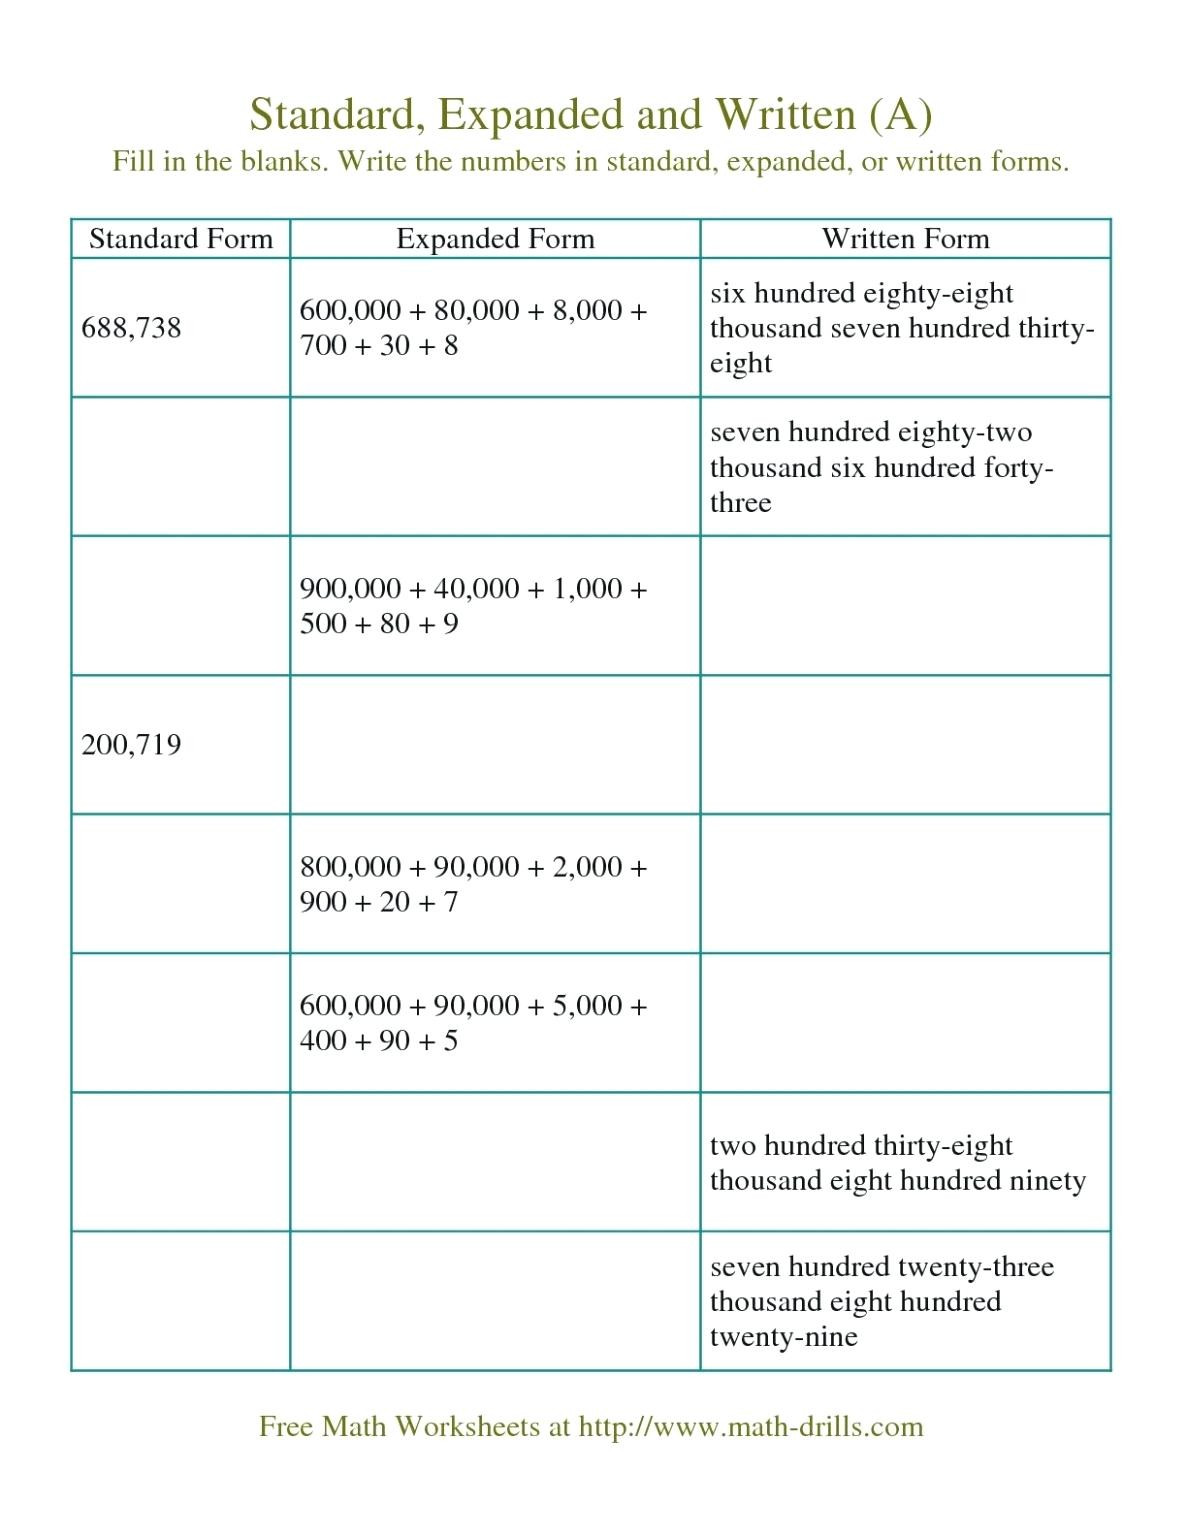 Expanded form Worksheets 5th Grade Place Value Worksheets 5th Grade for Educations Place Value